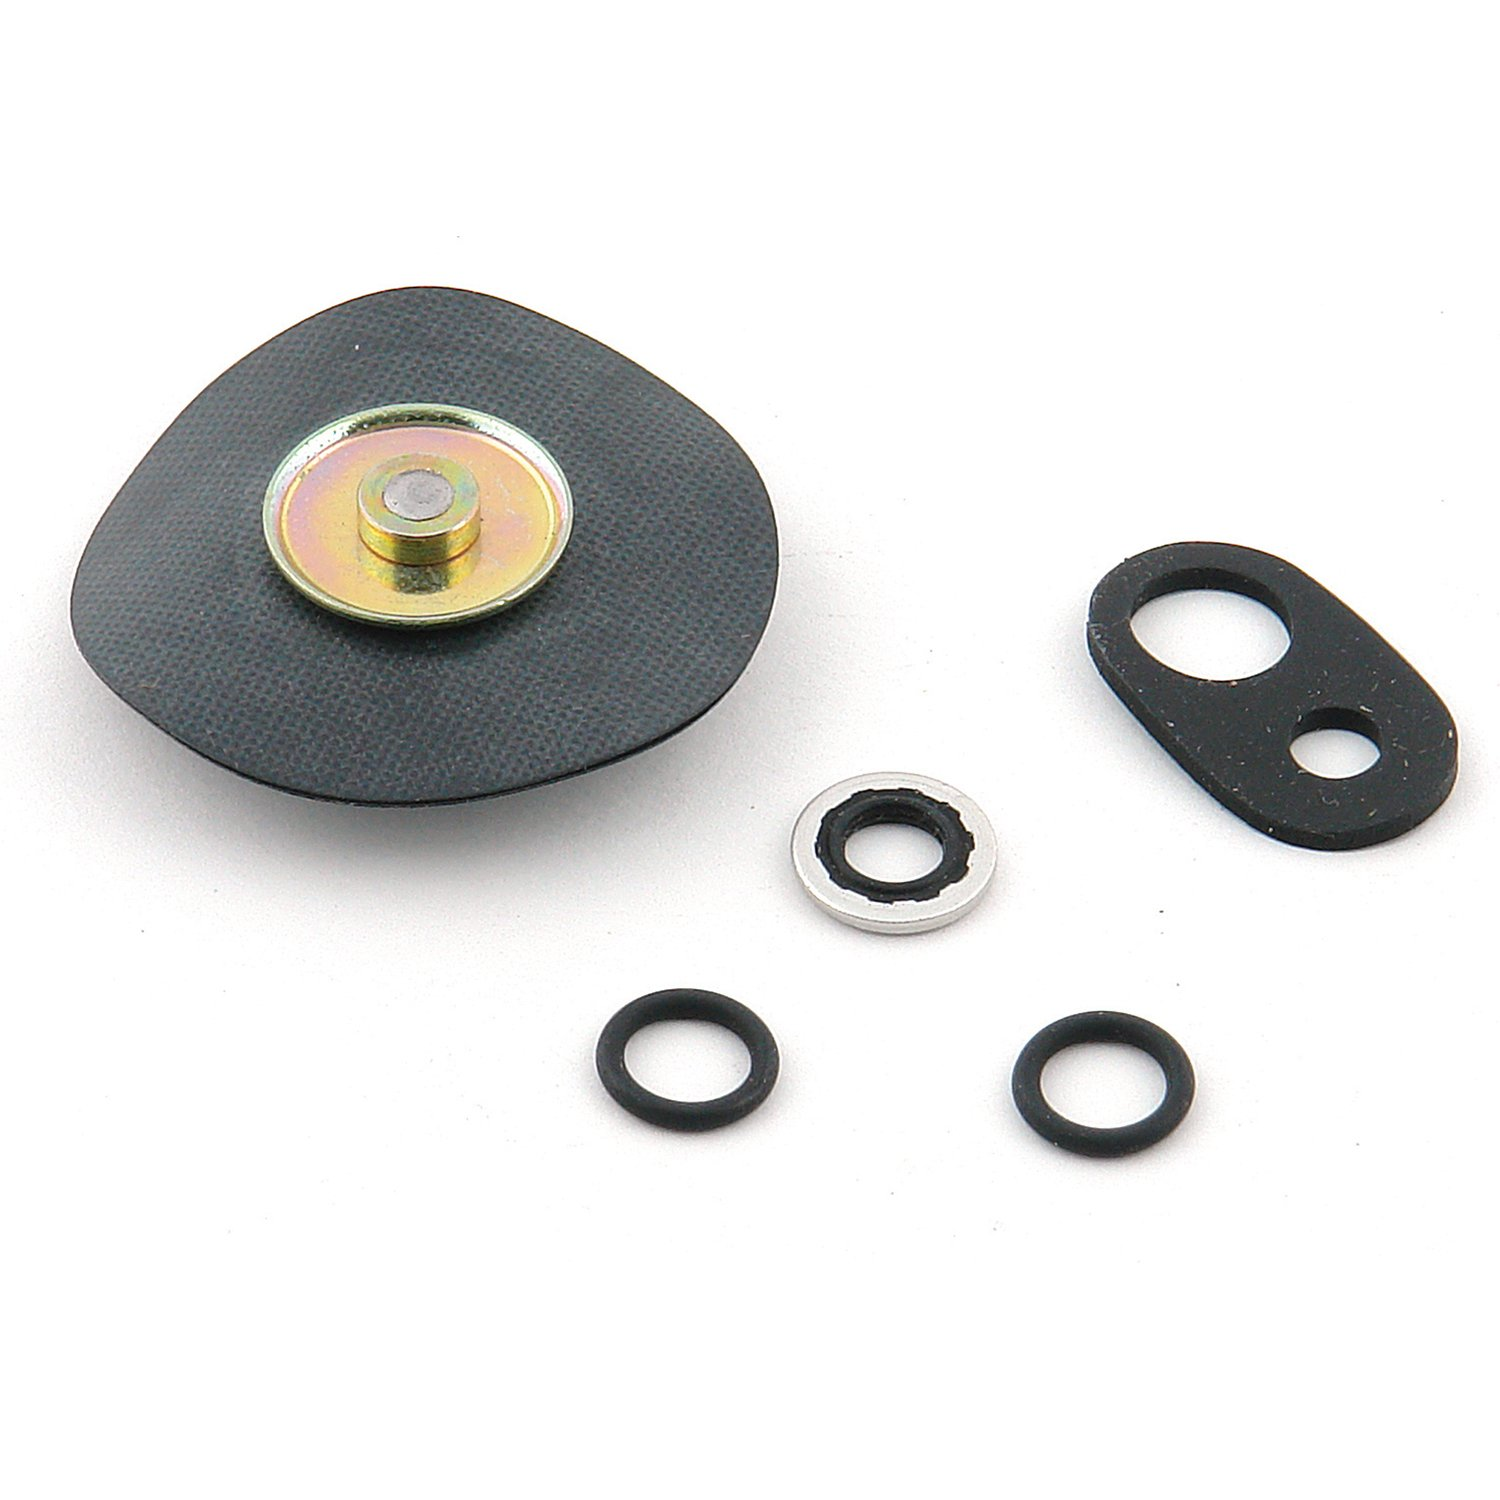 29929 - Mallory Diaphragm Kit, Gas and Alcohol Image